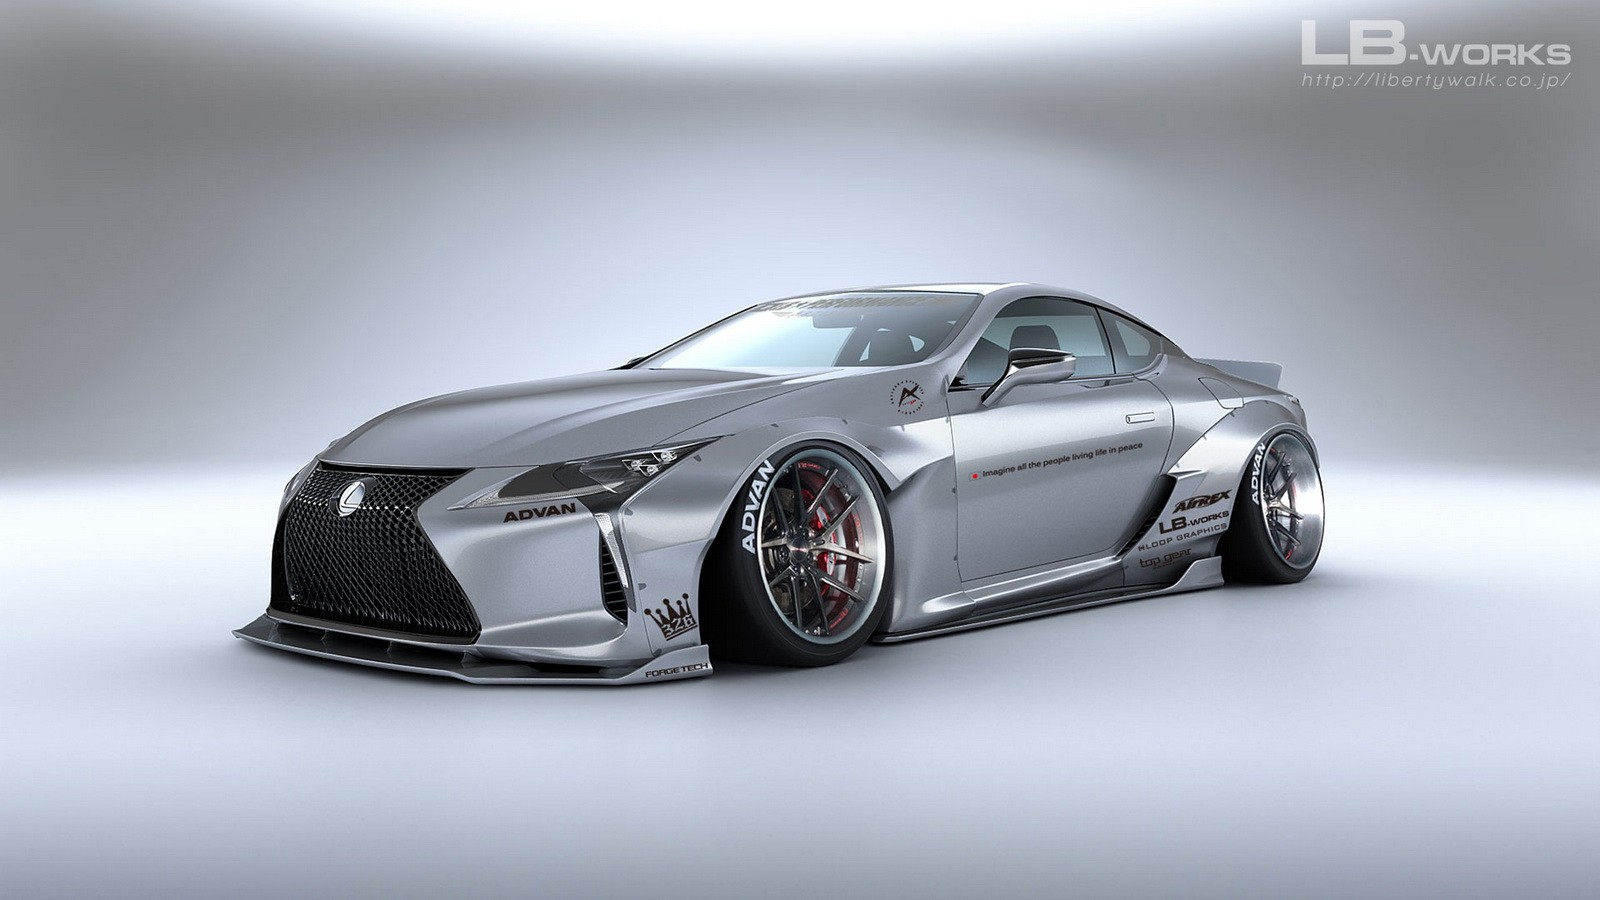 Liberty Walk Lexus Lc 500 Looks Like A Drifting Supercar